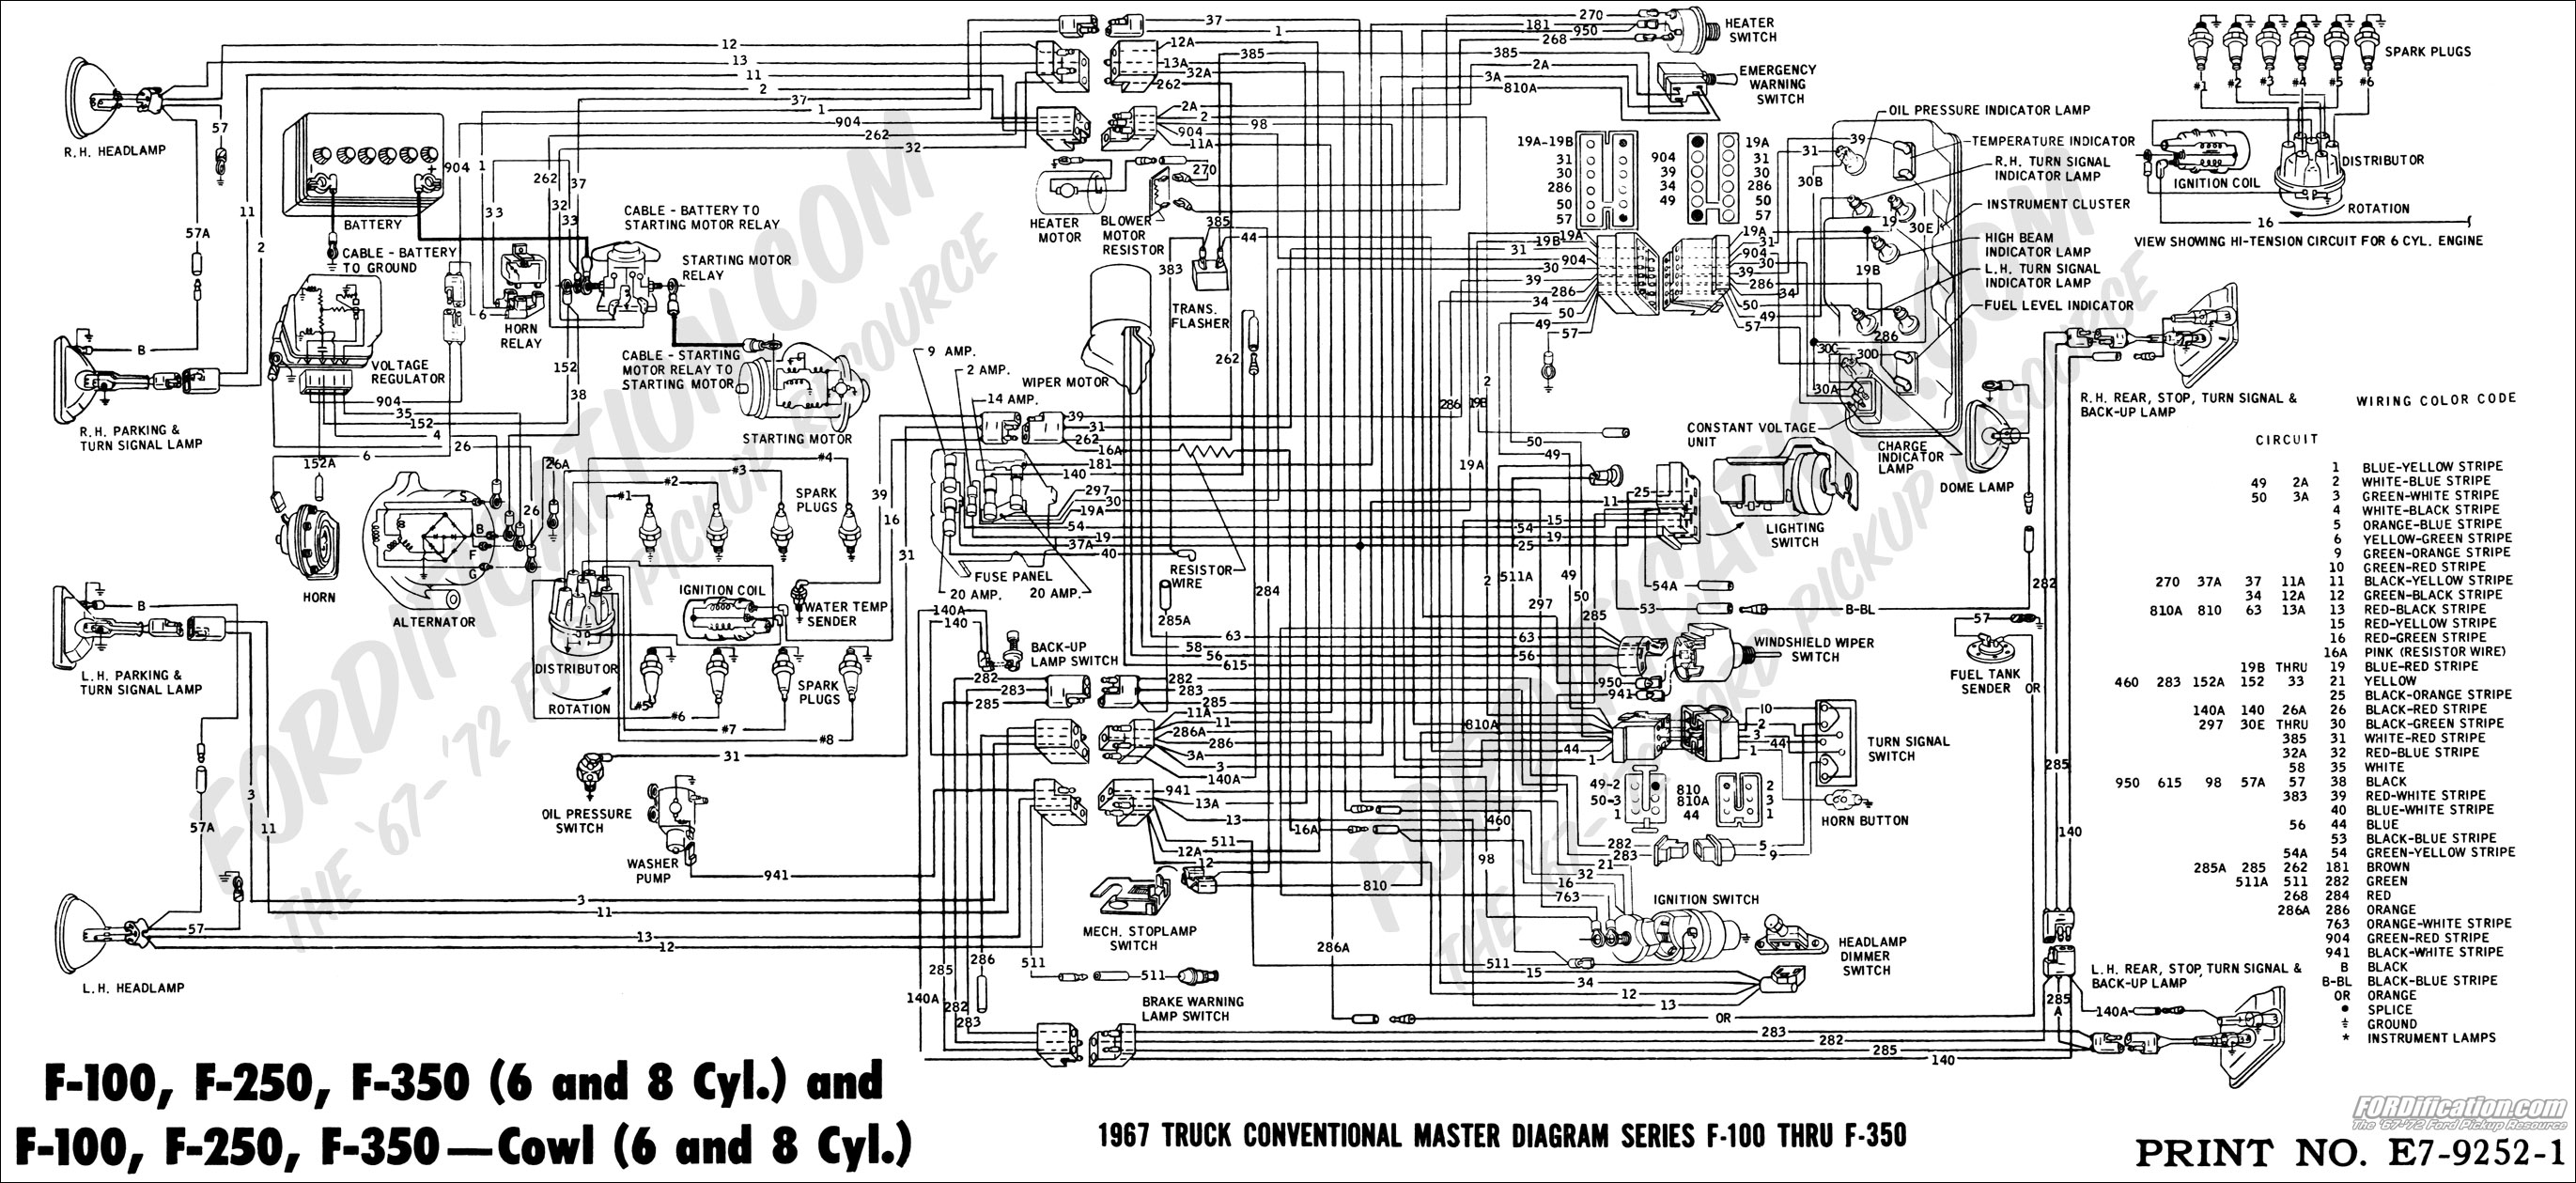 67masterdiagram ford truck technical drawings and schematics section h wiring truck wiring diagrams at edmiracle.co